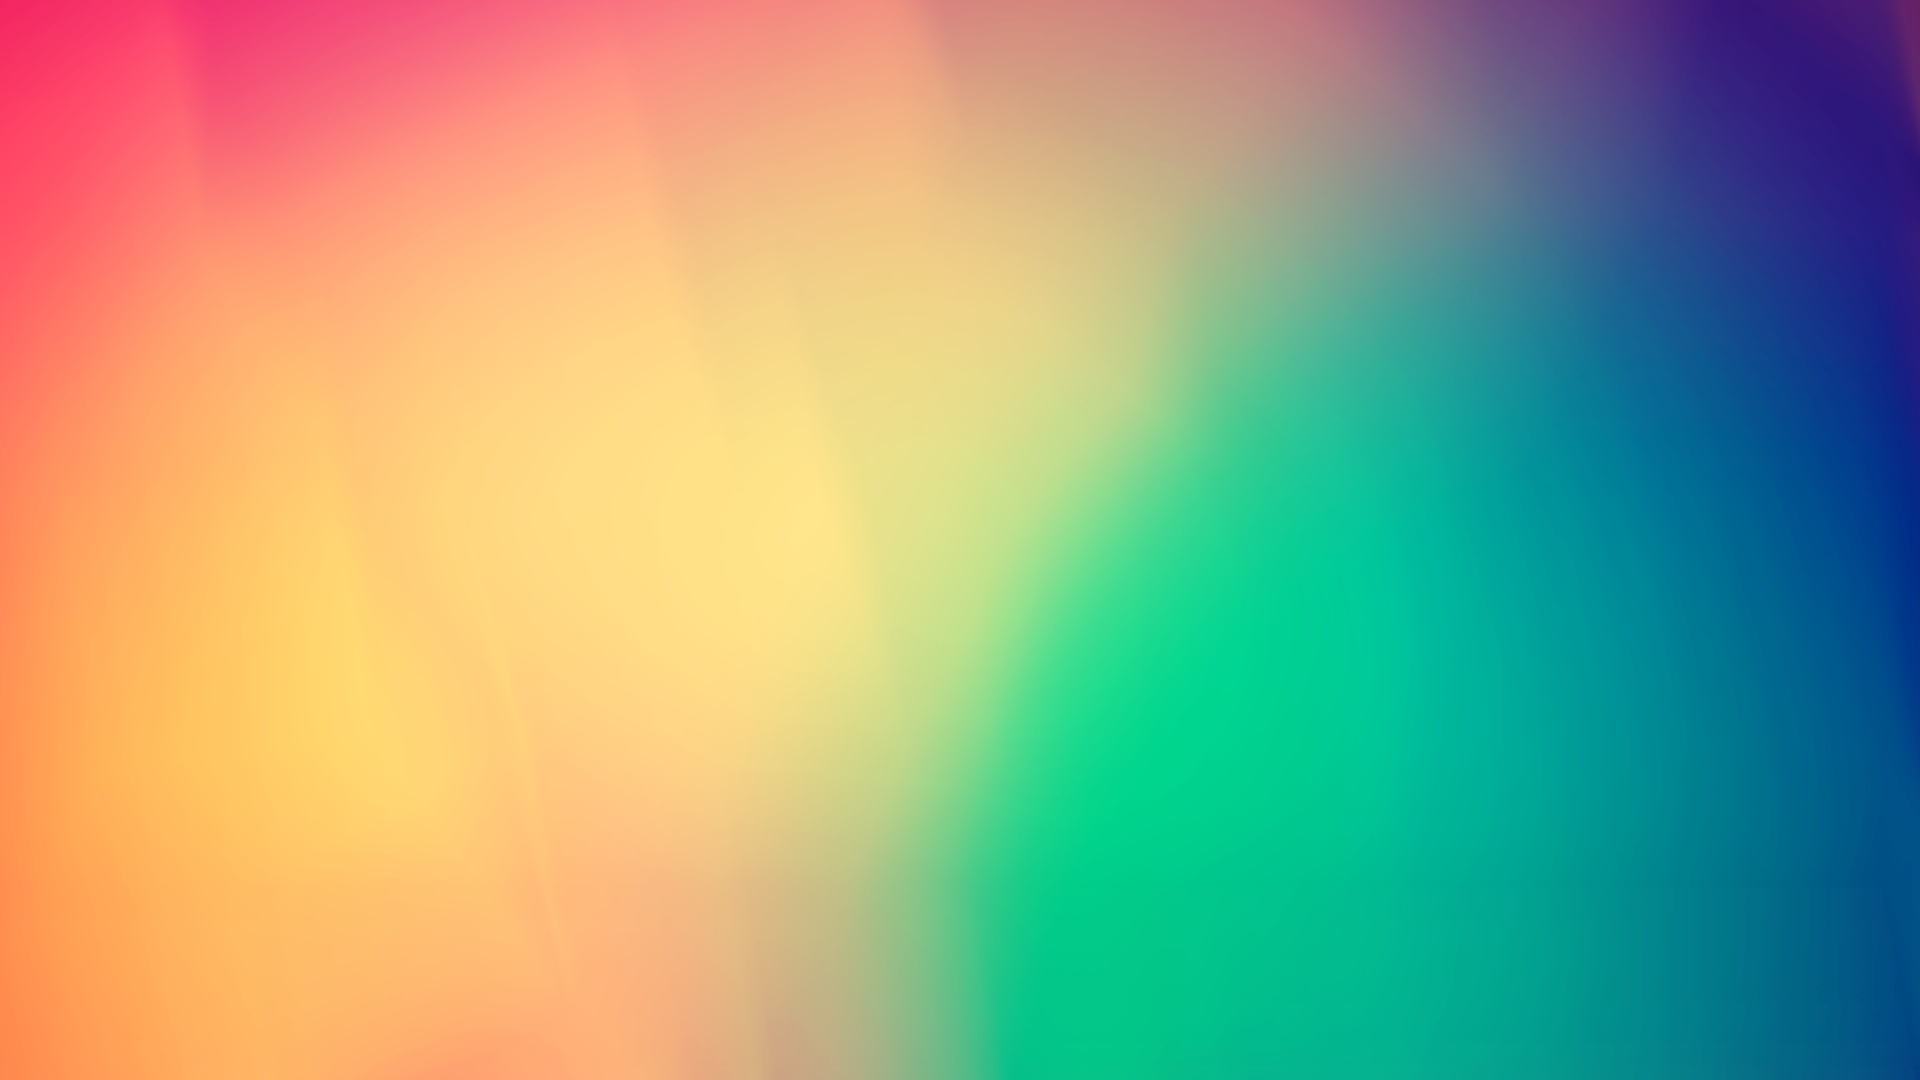 Colorful Plain Wallpaper 1920x1080 10146